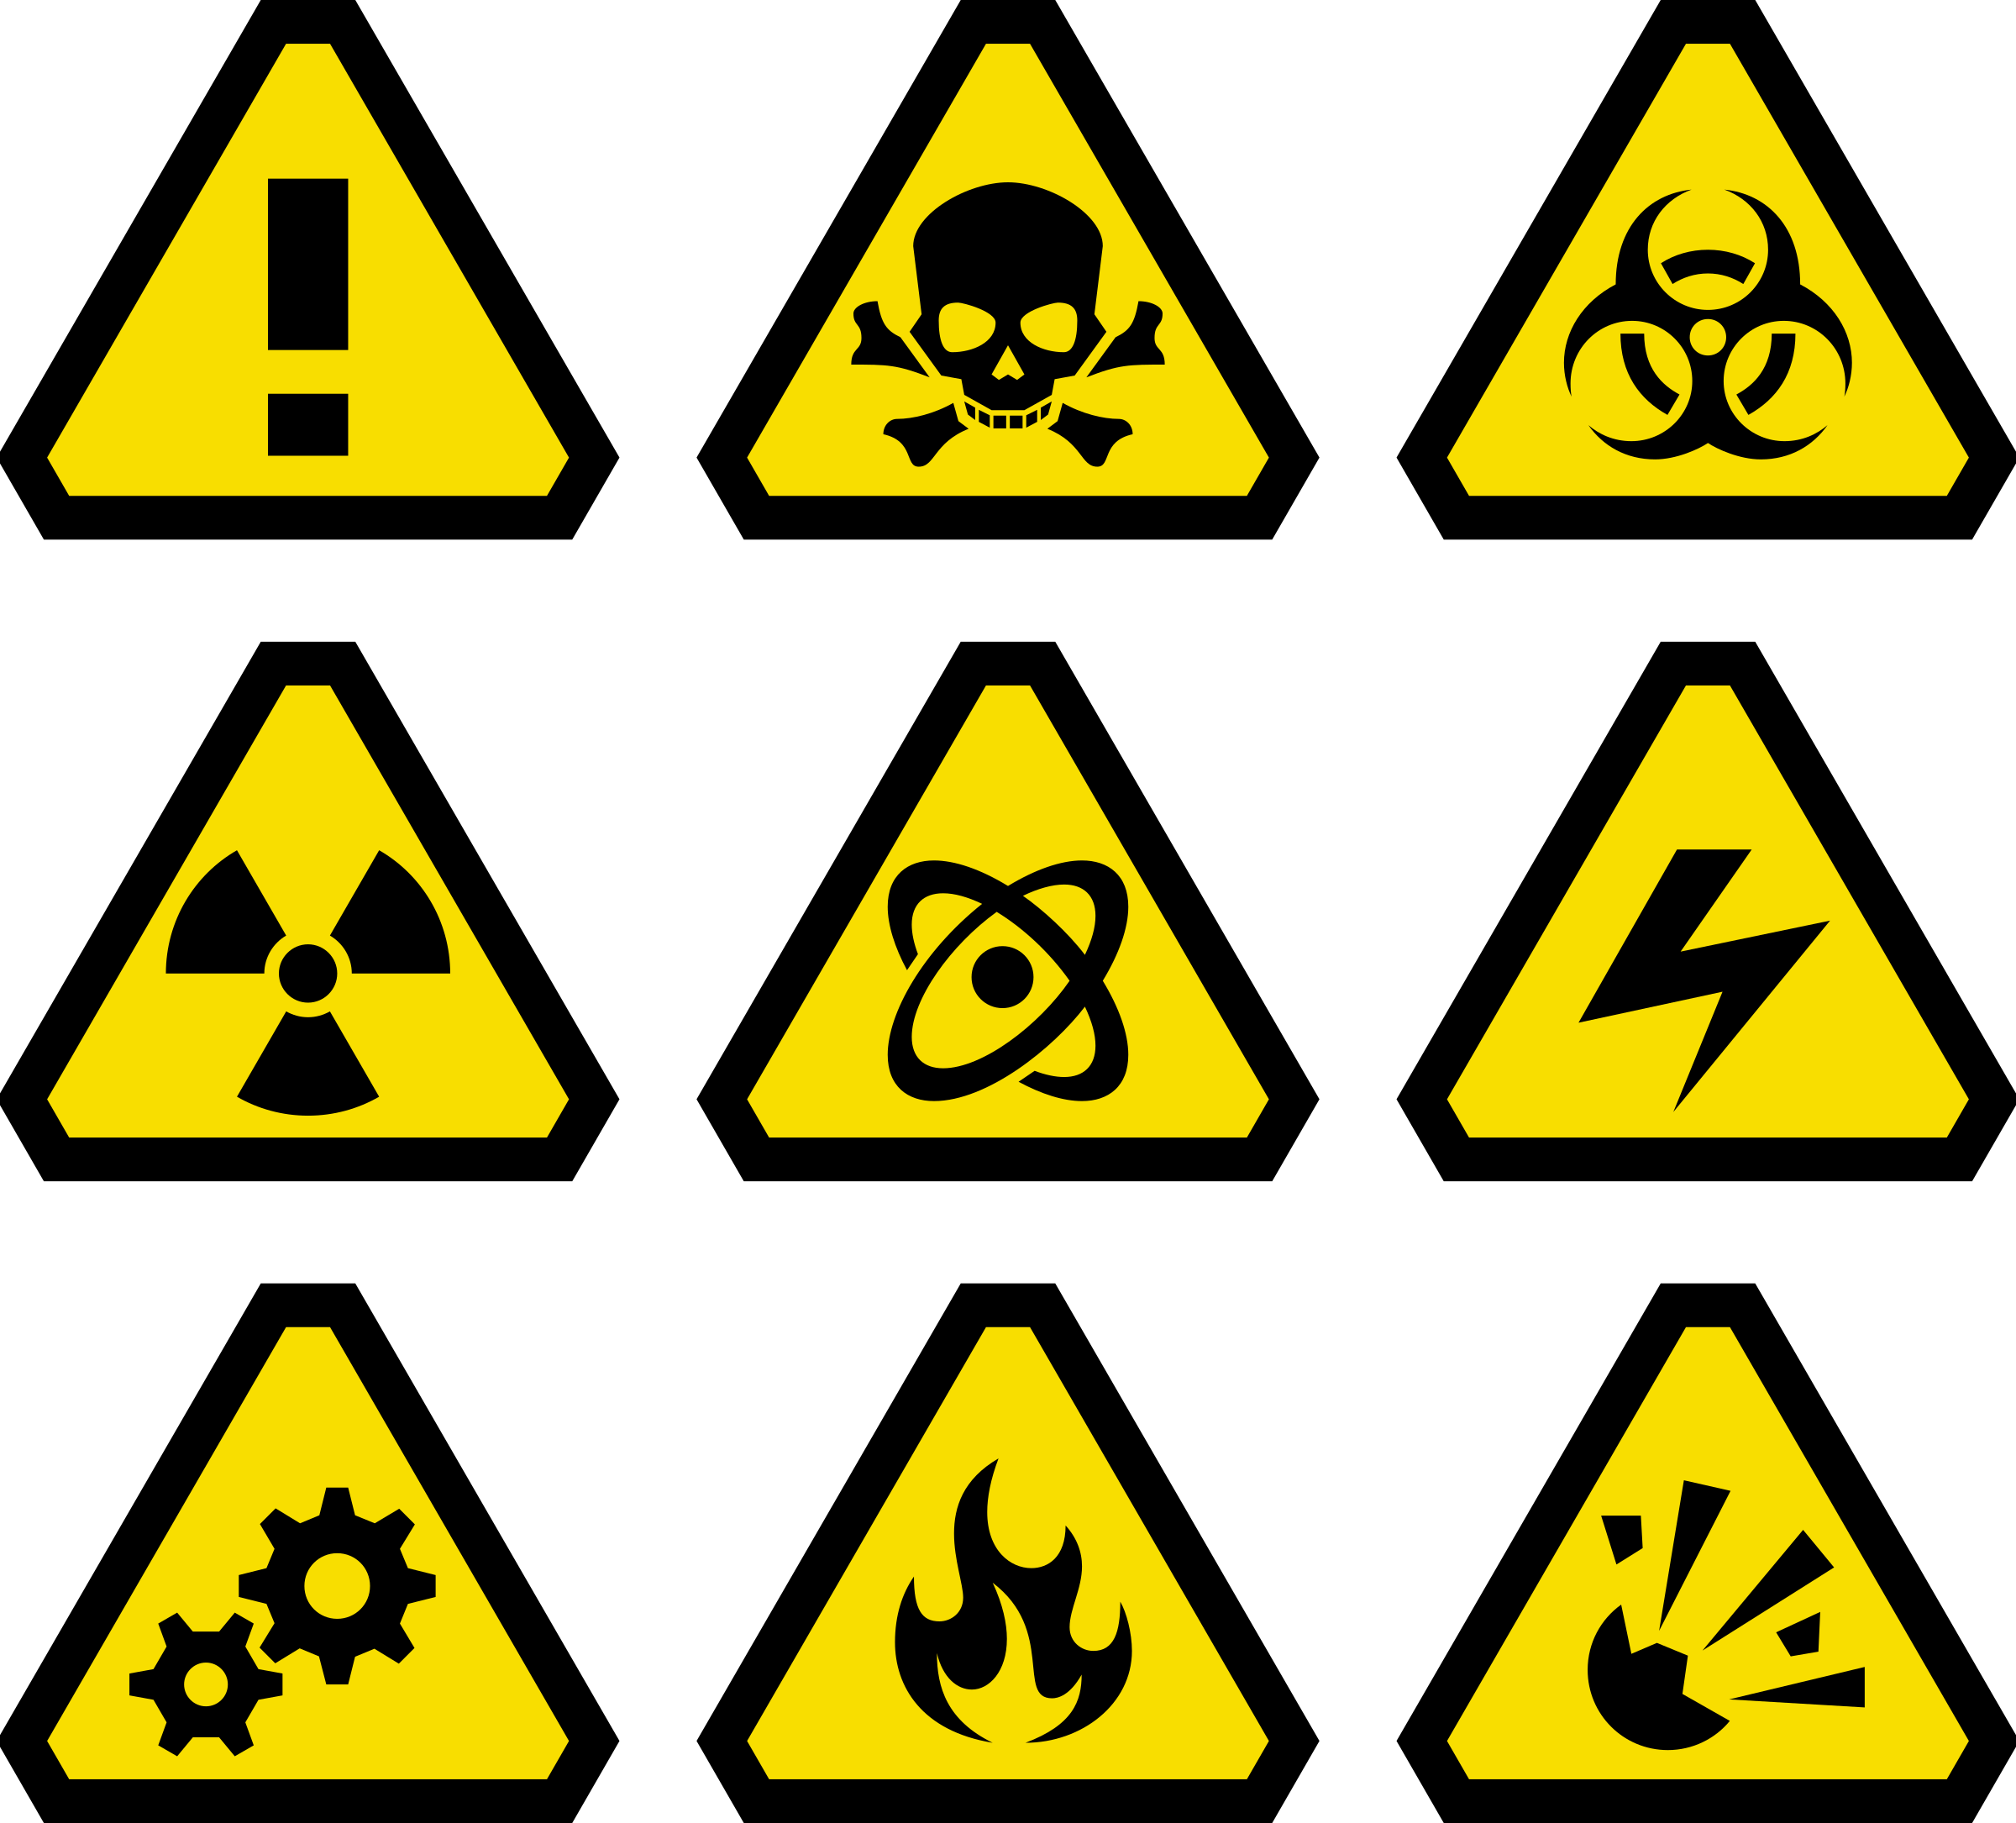 Warning clipart symptom. Sign pictures clip art